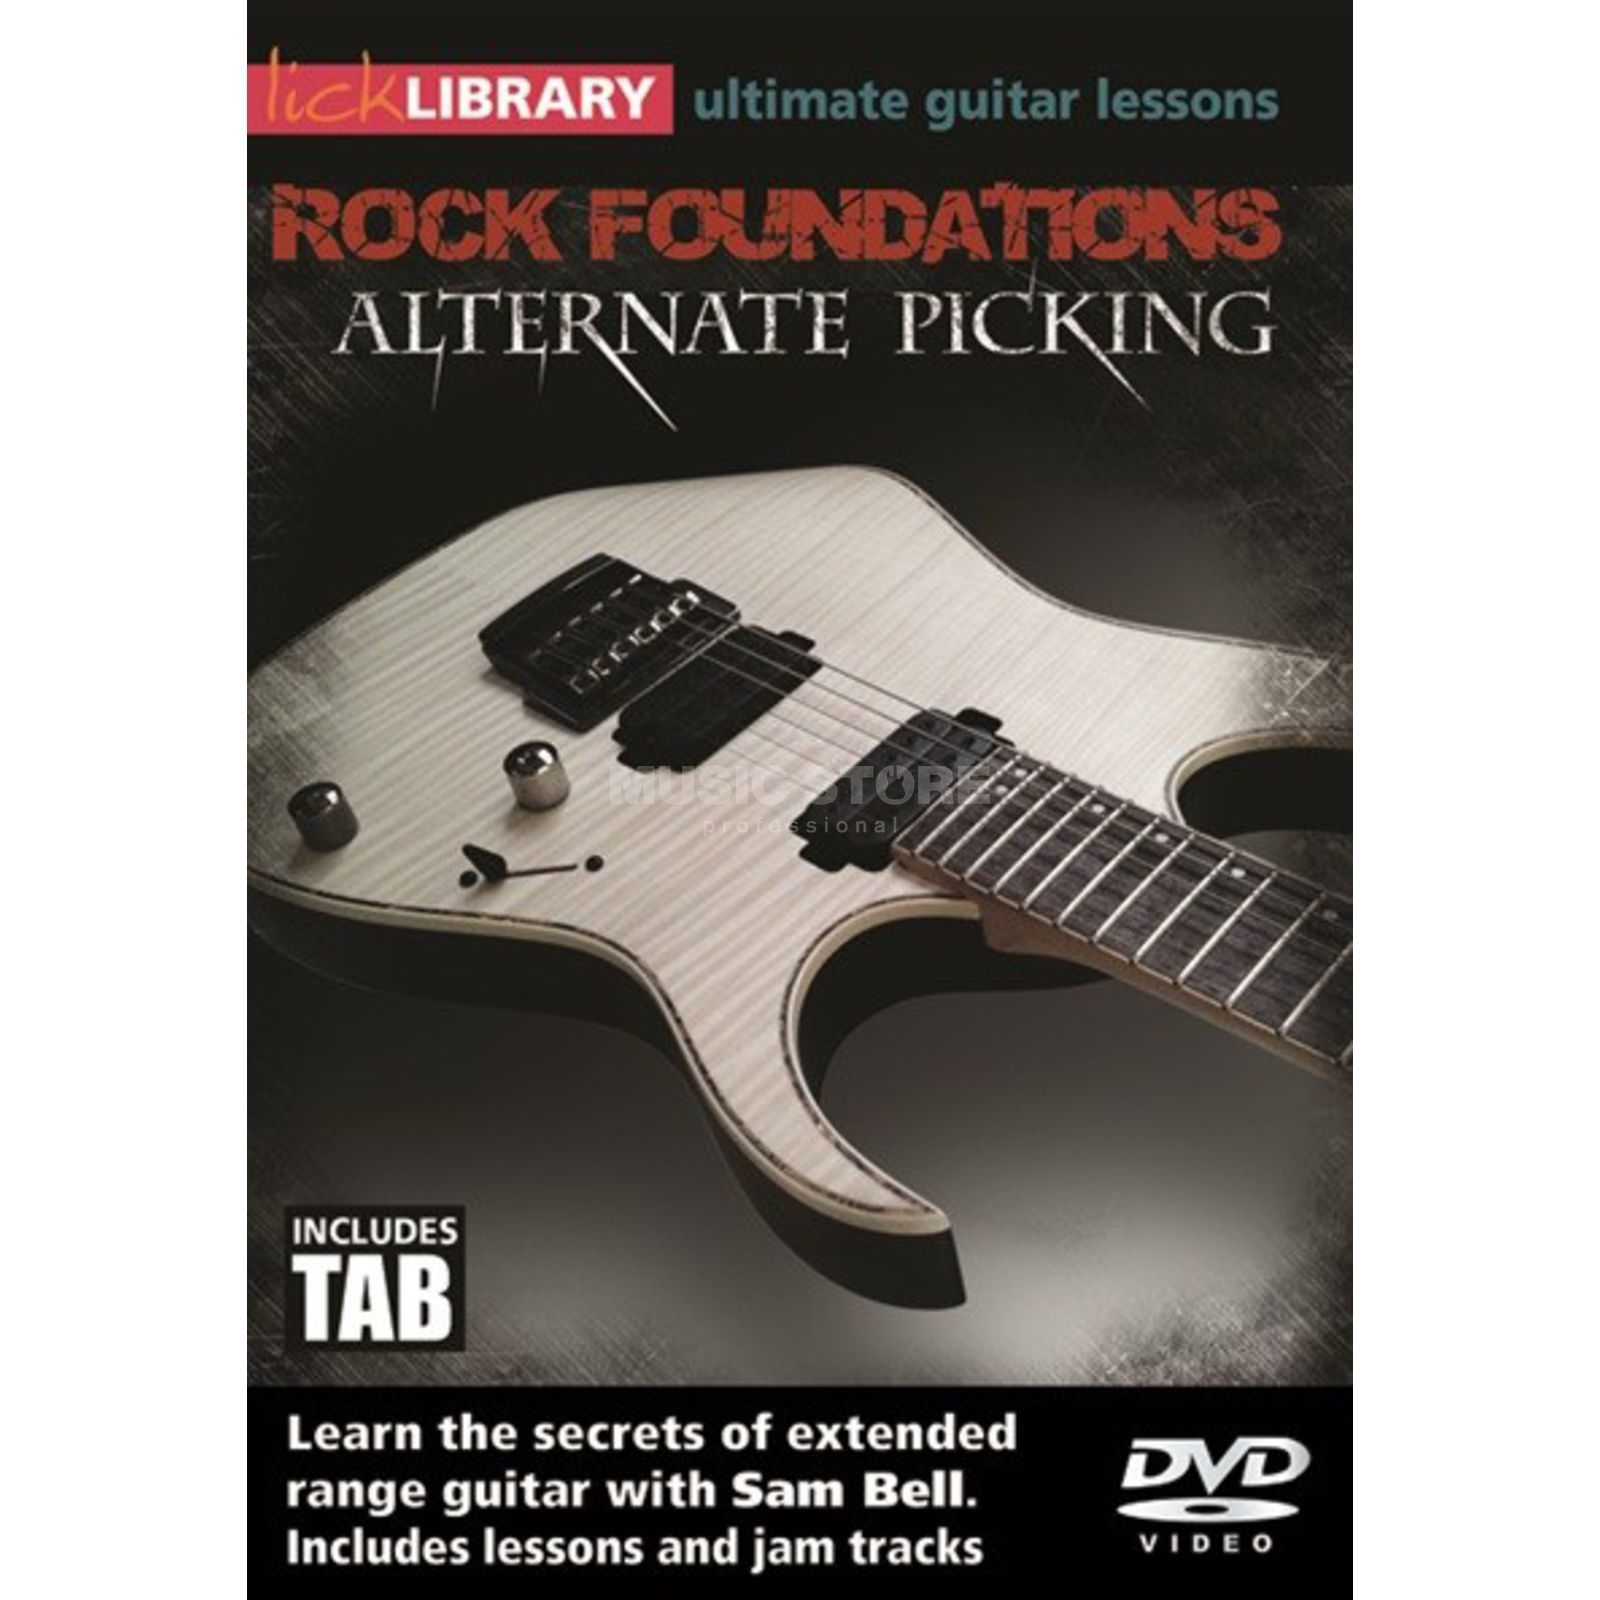 Roadrock International Lick Library: Rock Foundations Alternate Picking DVD Produktbild